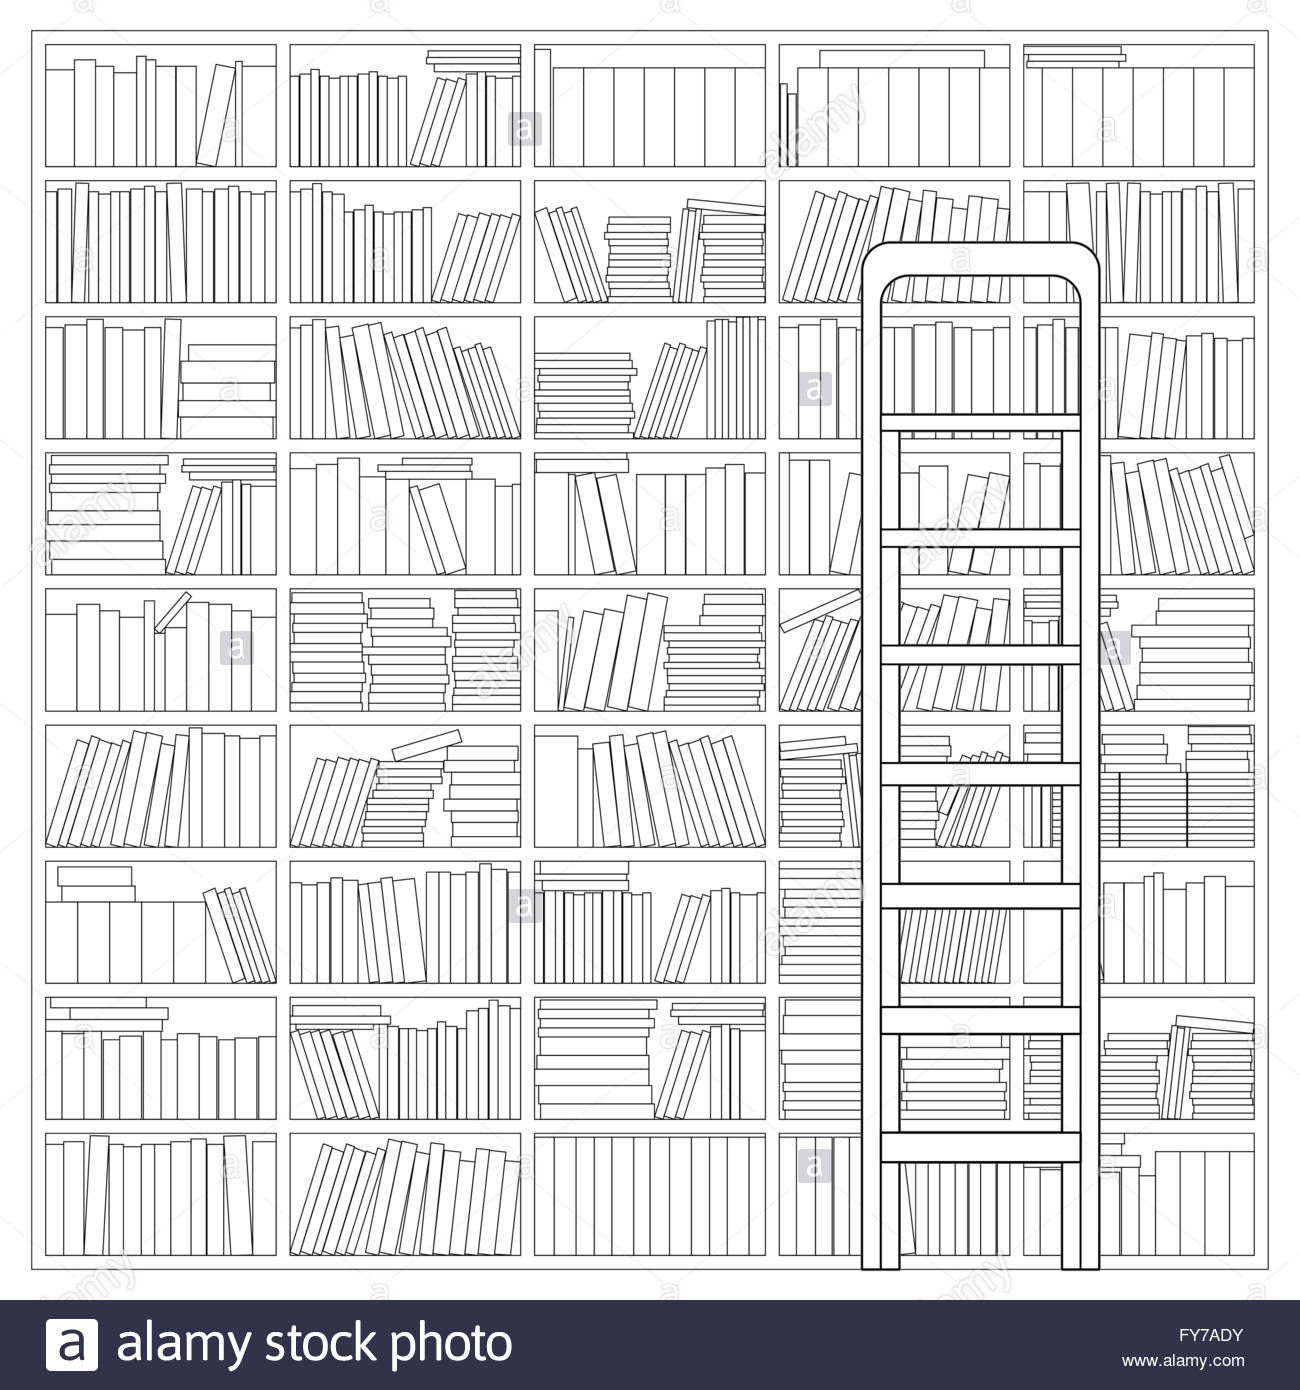 Bookshelf with Ladder. Outline Drawing of a Bookshelf with Ladder - Stock Image